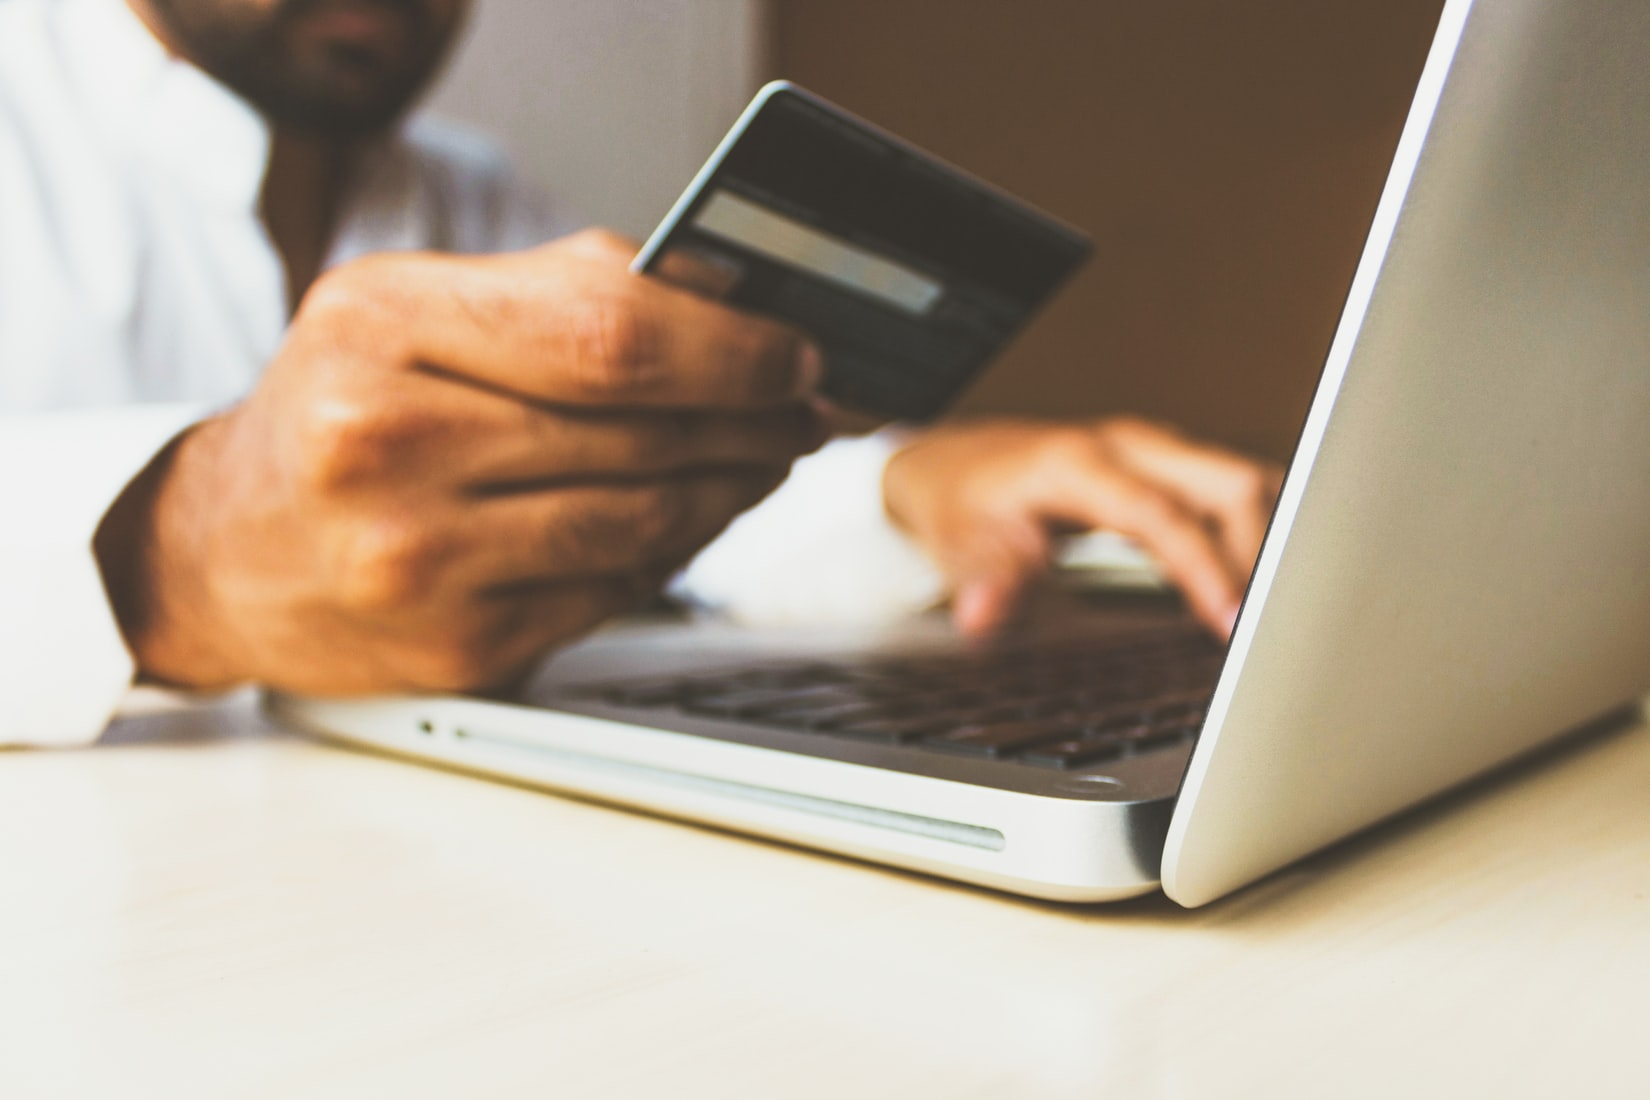 Greedy man holding debit card while typing on laptop